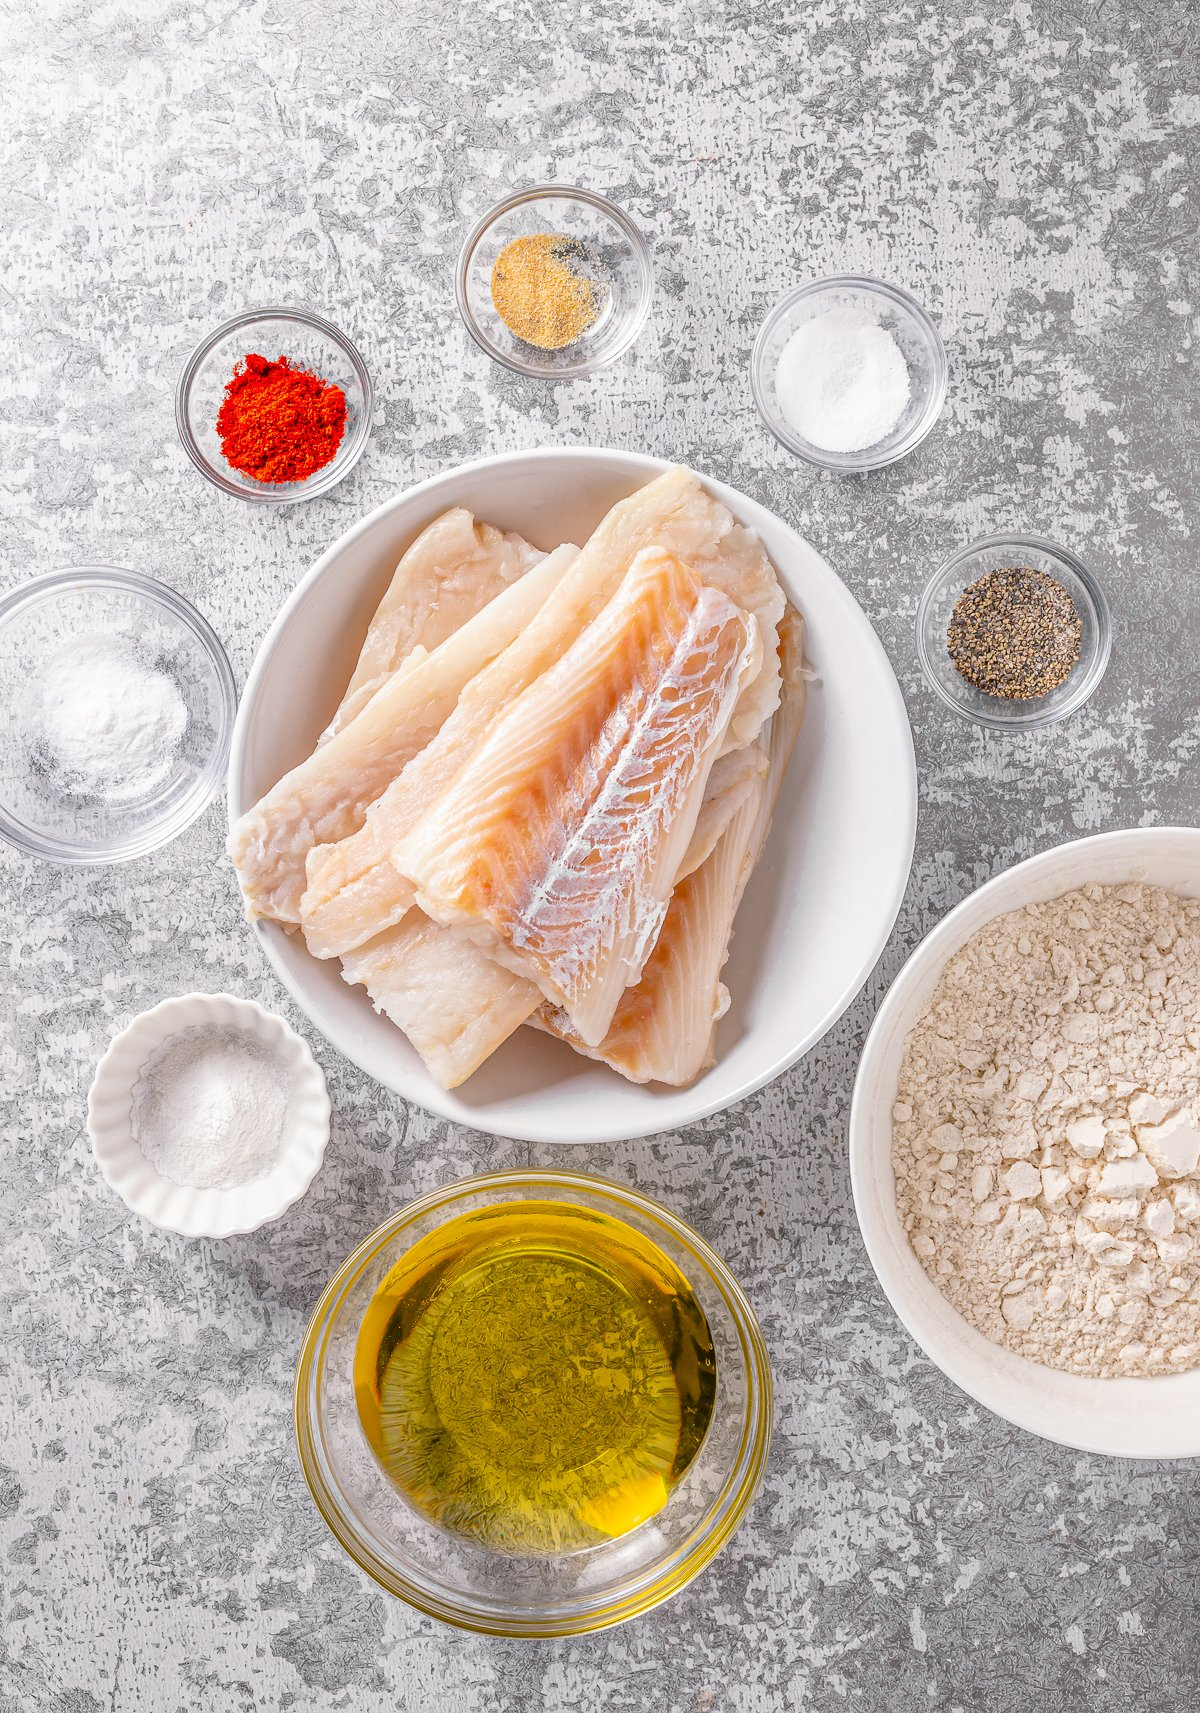 Ingredients needed to make Captain D's Crunchy Battered Fish Recipe